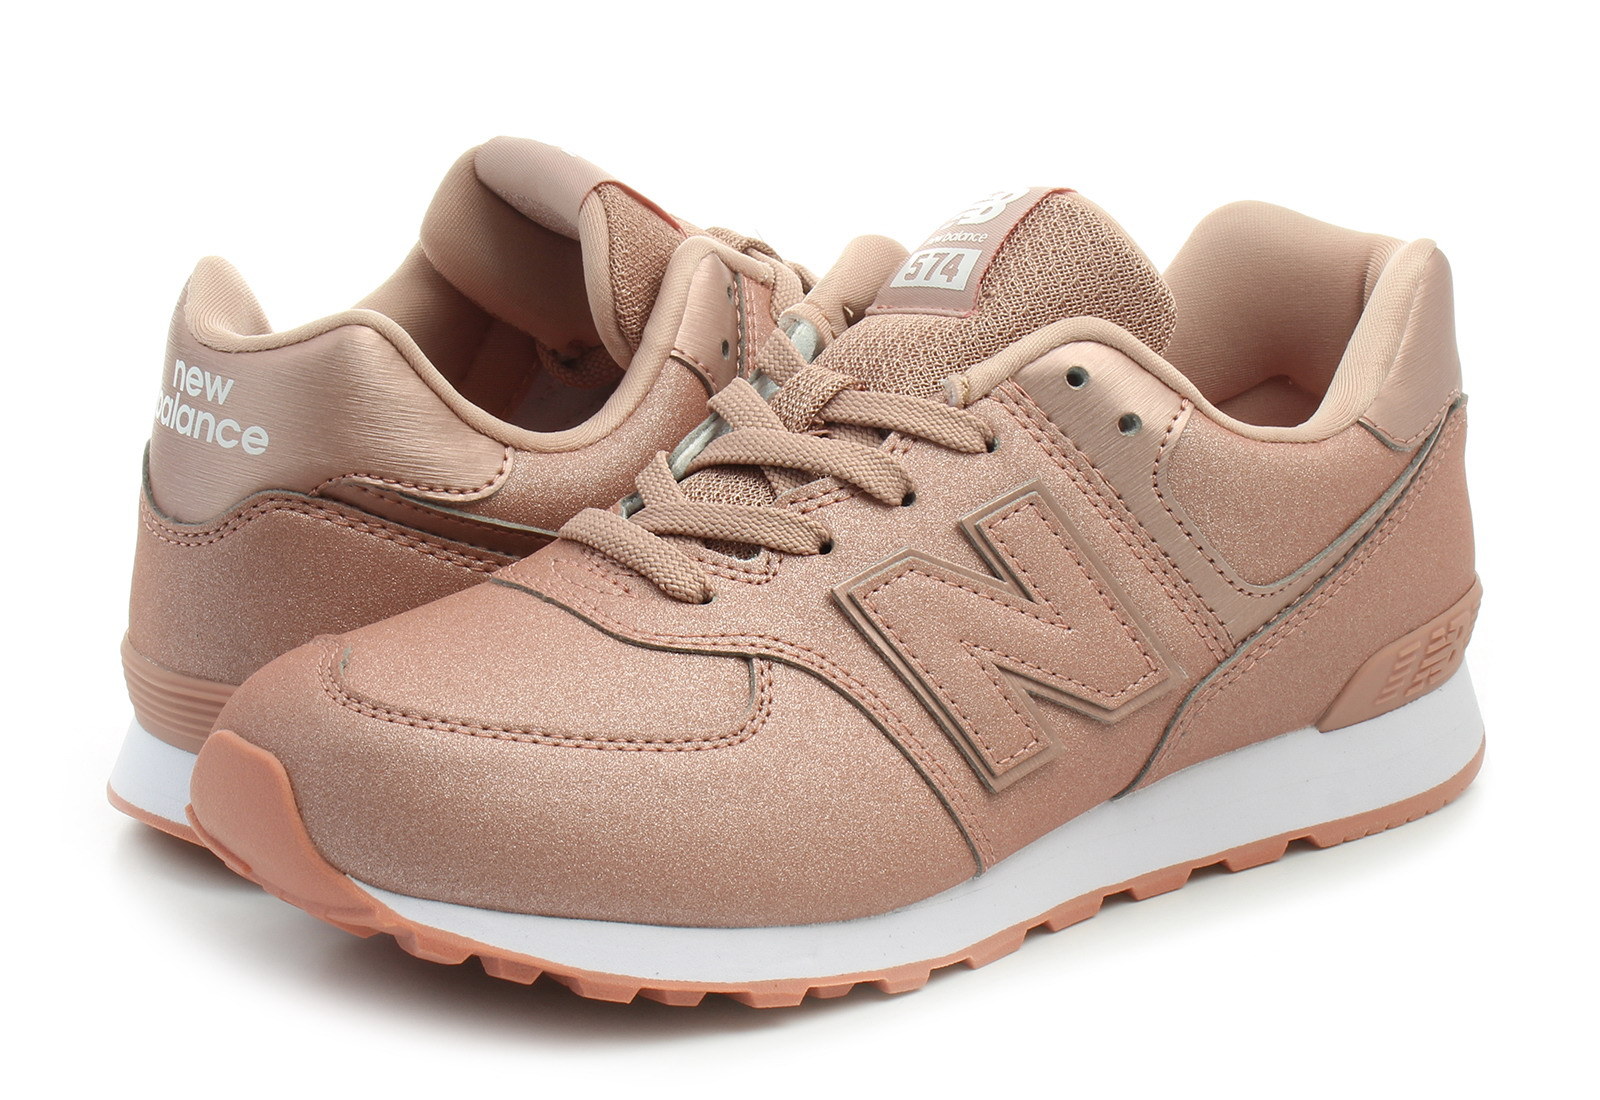 f225dc9d74a New Balance Shoes - Gc574 - GC574KA - Online shop for sneakers ...